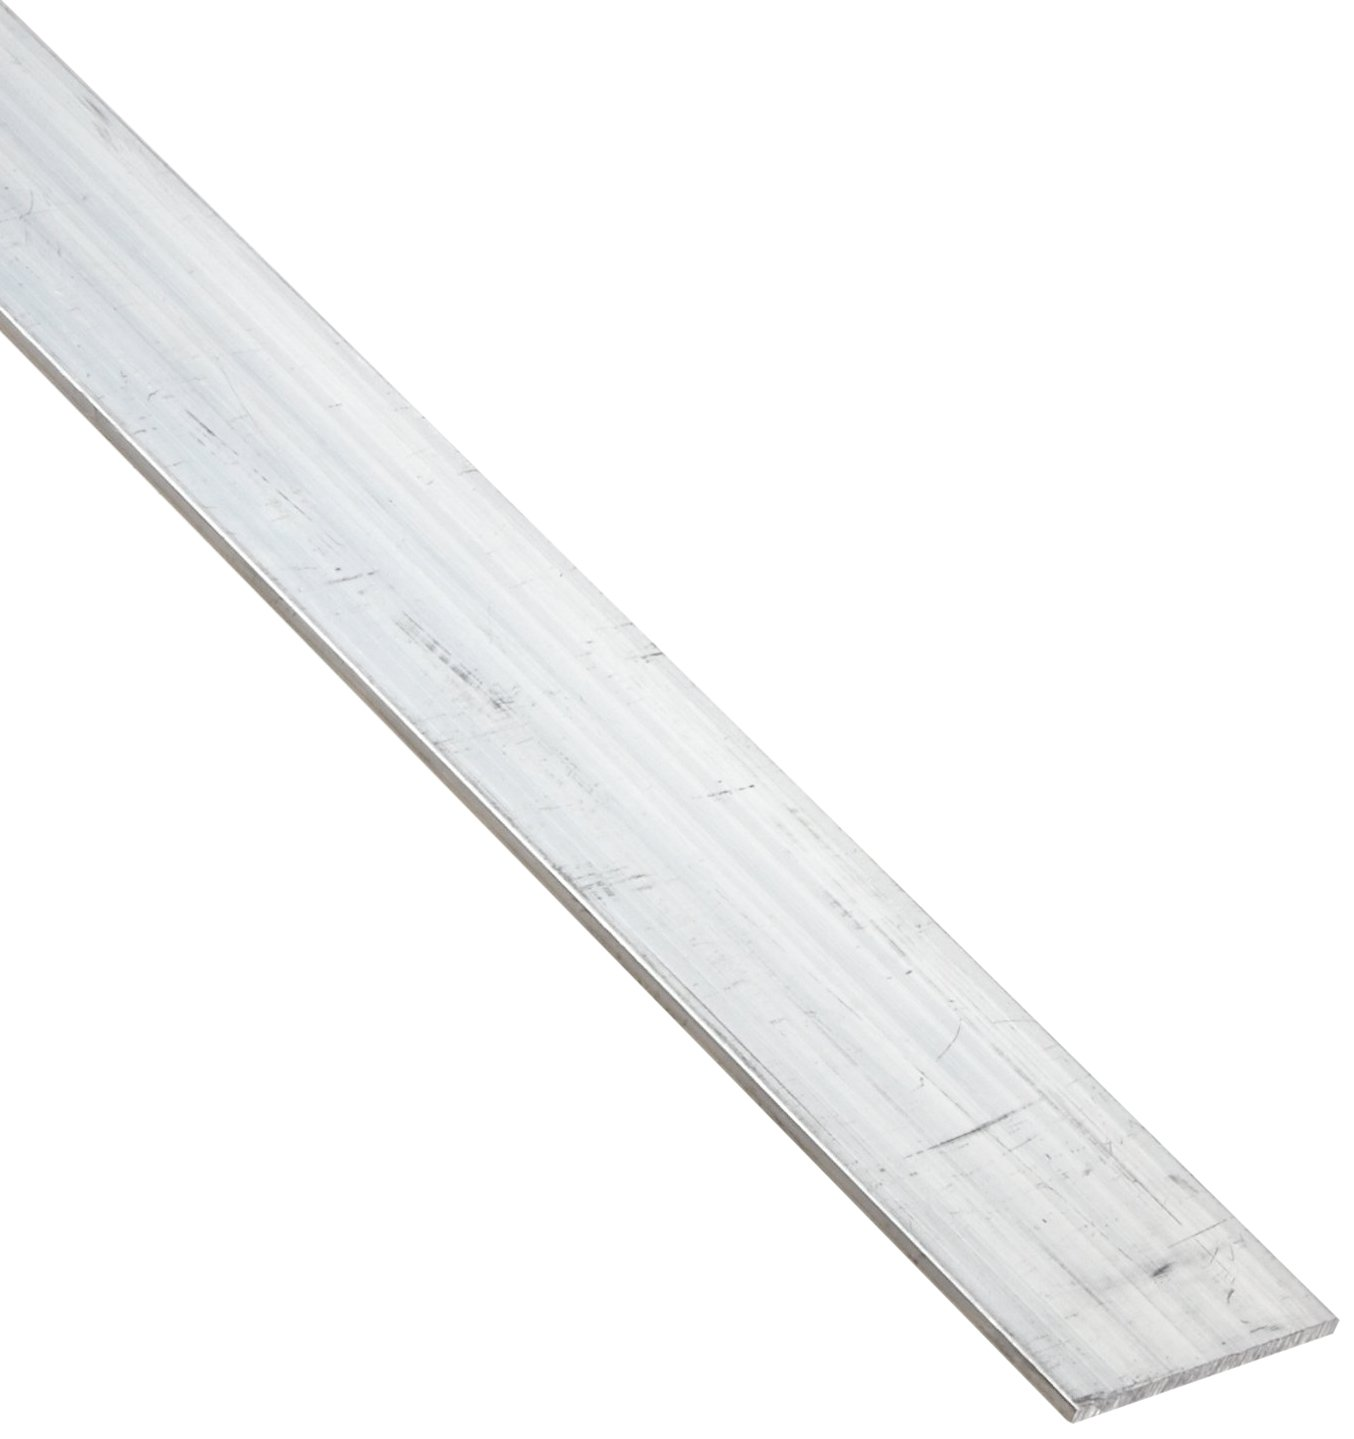 "6061 Aluminum Rectangular Bar, Unpolished (Mill) Finish, T6 Temper, 1/8"" Thickness, .125"" Height,  1"" Width, 60"" Length"